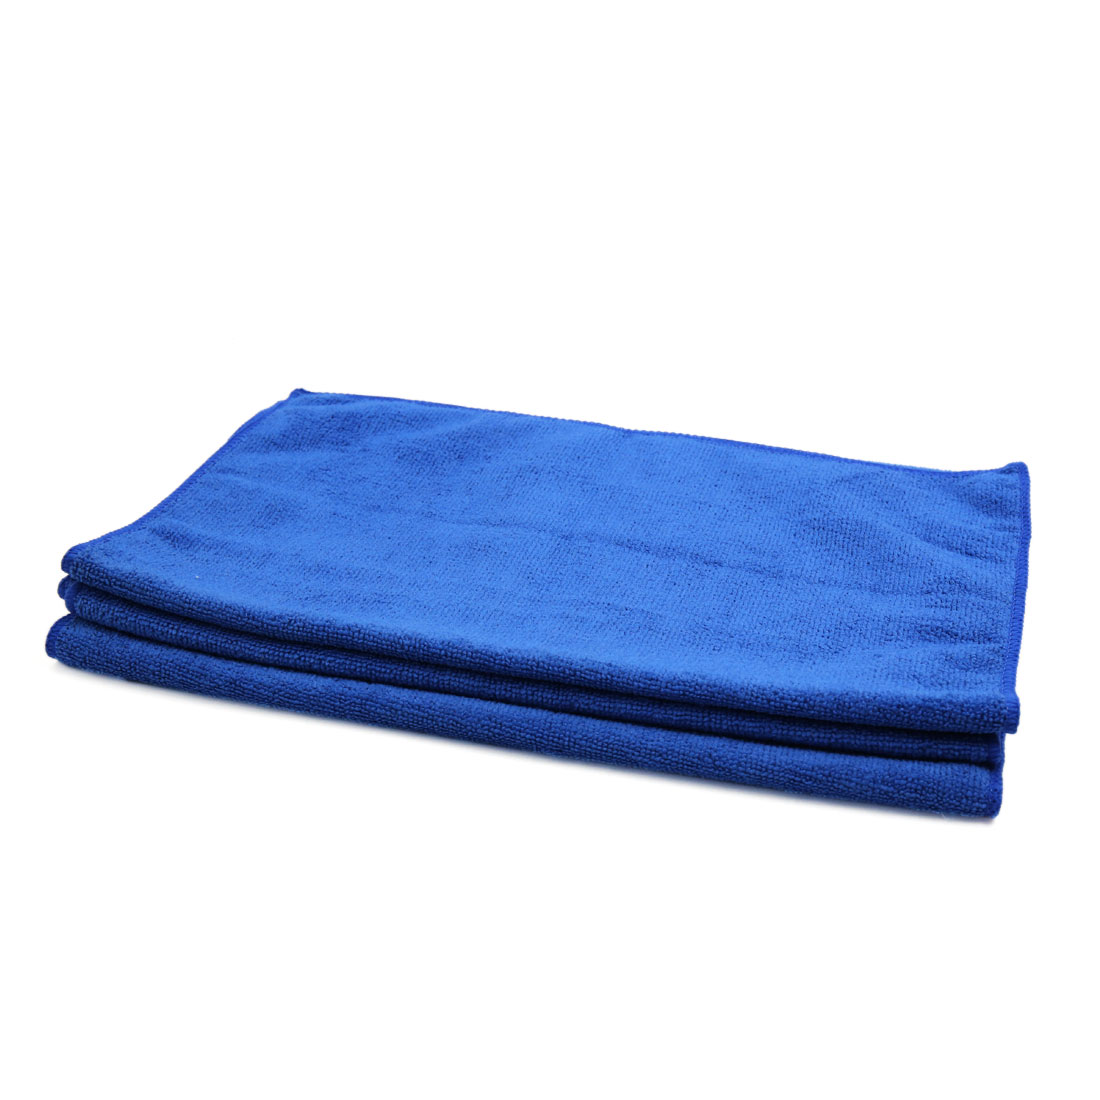 3pcs 300gsm 65 x 33cm Dark Blue Water Absorbing Microfiber Car Cleaning Towel